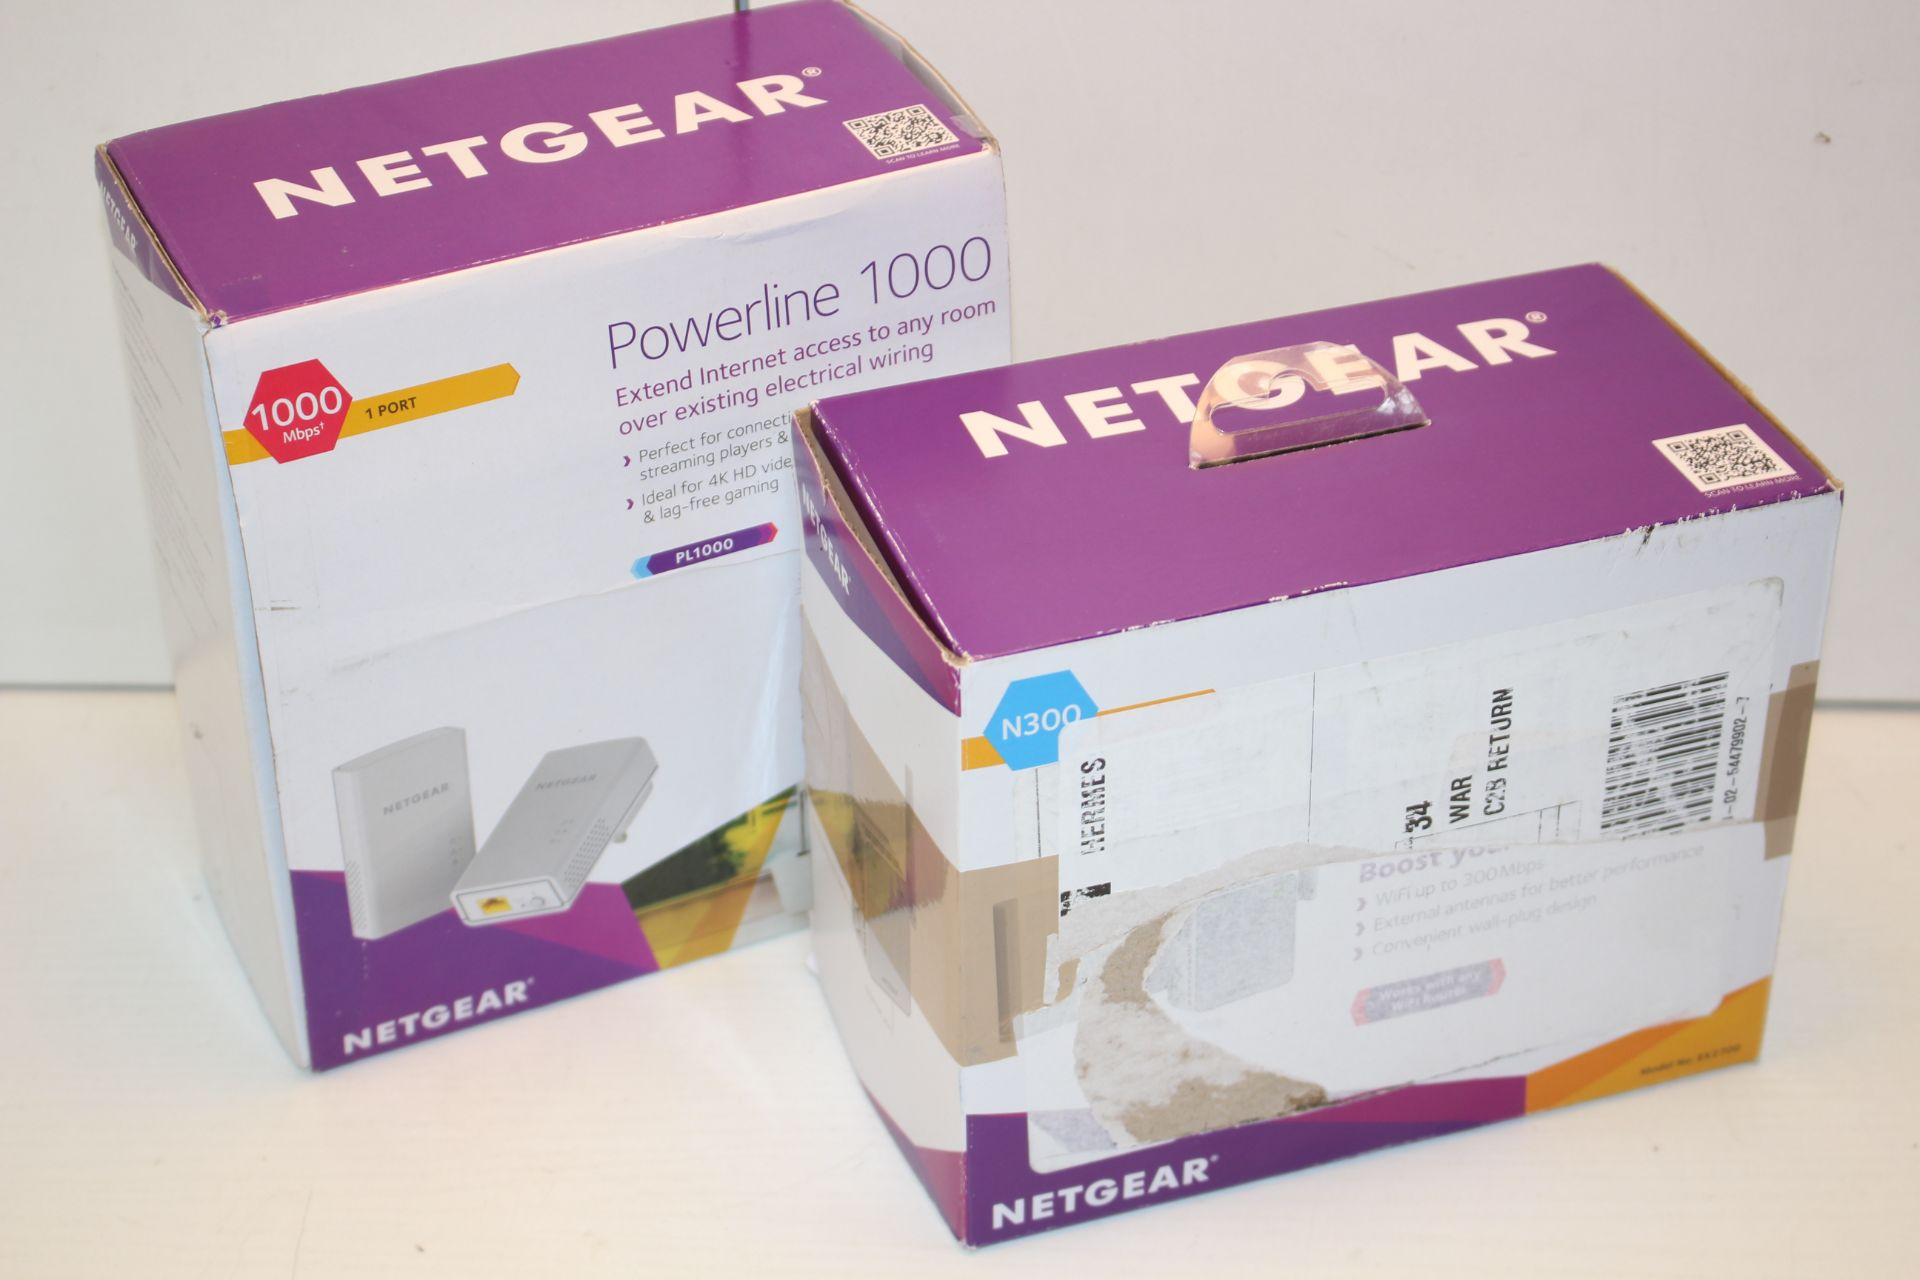 2X BOXED ASSORTED NETGEAR WIFI RANGE EXTENDERS Condition ReportAppraisal Available on Request- All